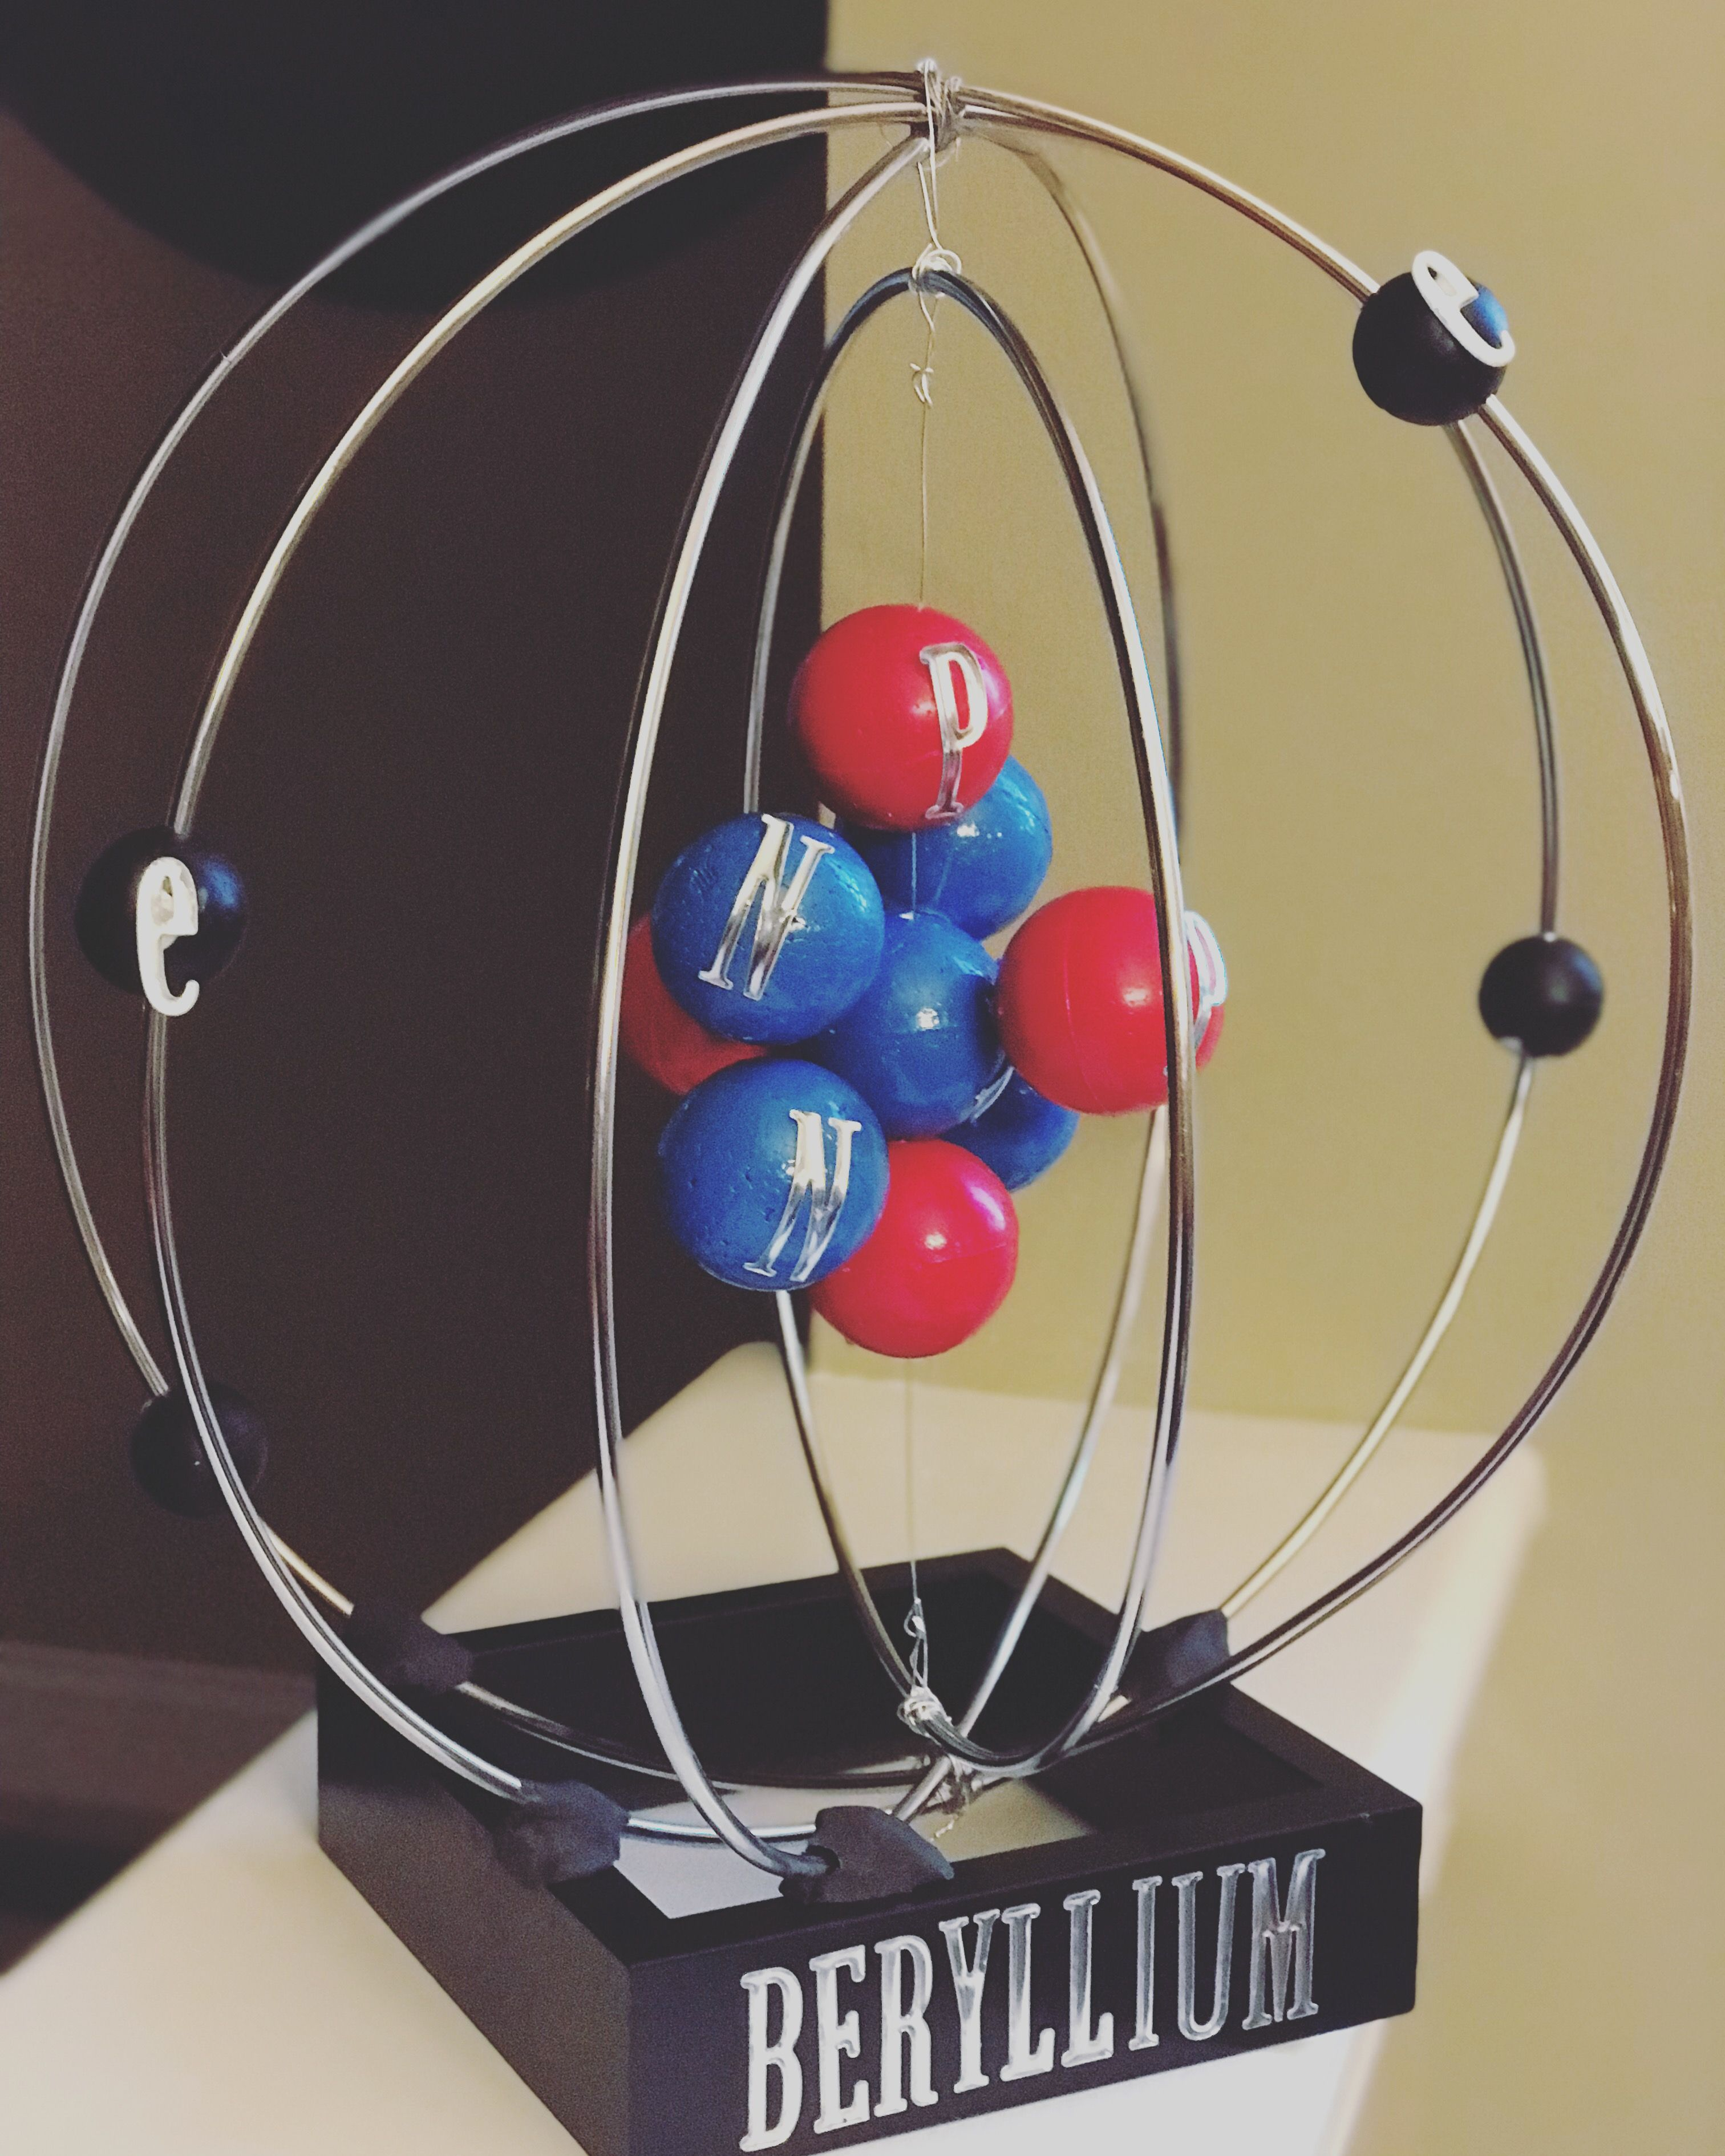 7th Grade Science Project Nailed It Way To Go Jack Atom Model Beryllium 7th Grade Science Projects Science Projects Science Project Models